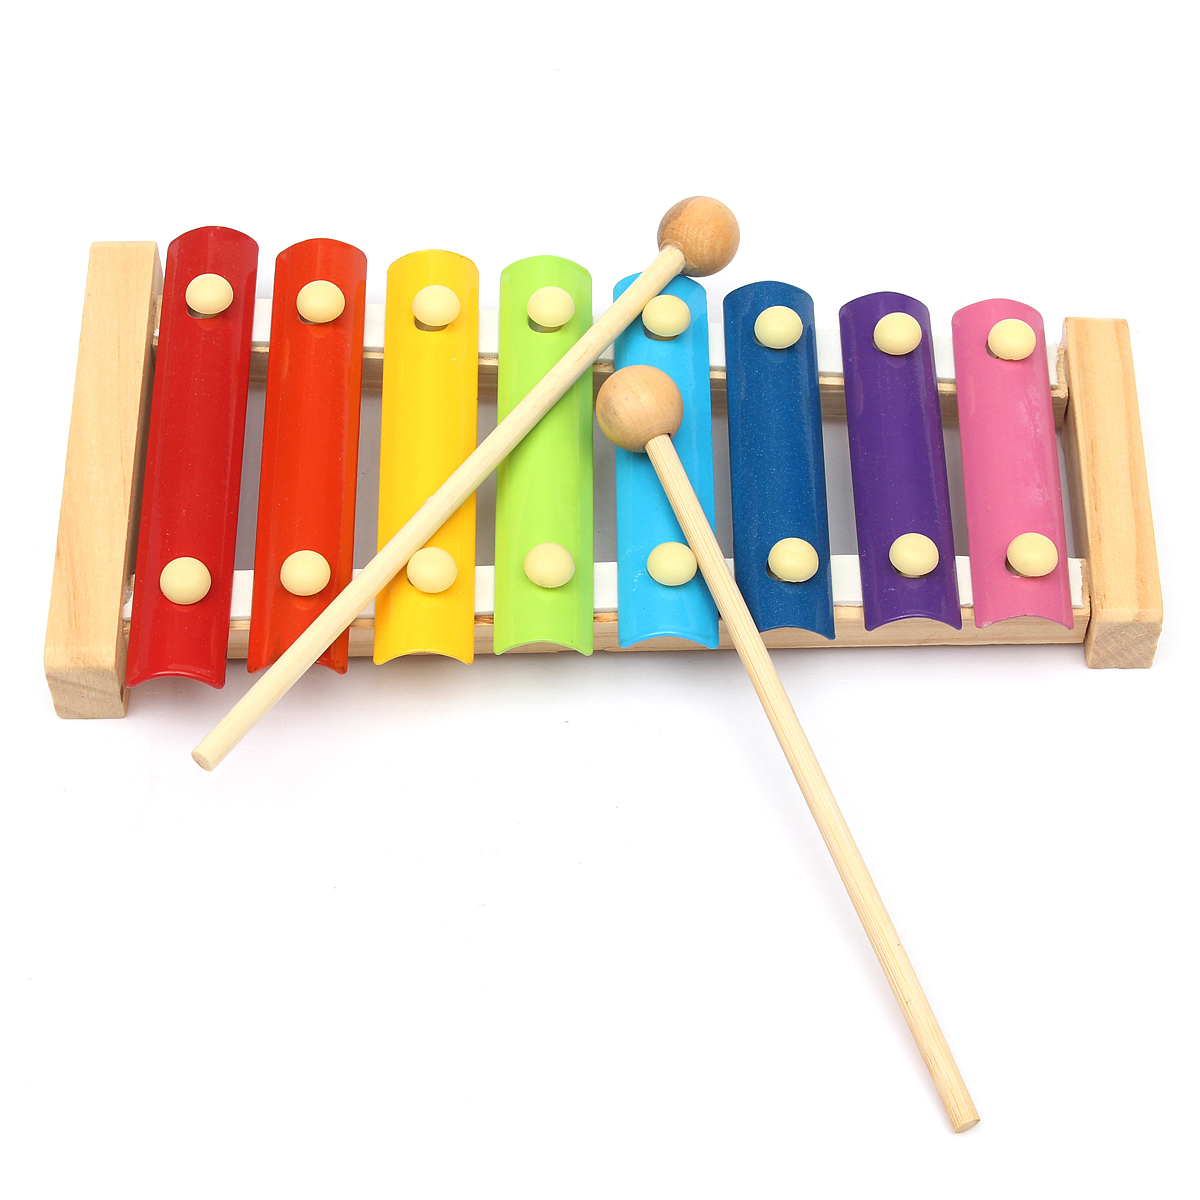 In Learnin Tones For Toddlers Advance Preschoolers Woodeninstrument Piano Hand Knock Xylophone Different Colorful Rhythm 8 Toy And Wood Music Kids tCsrhxQd